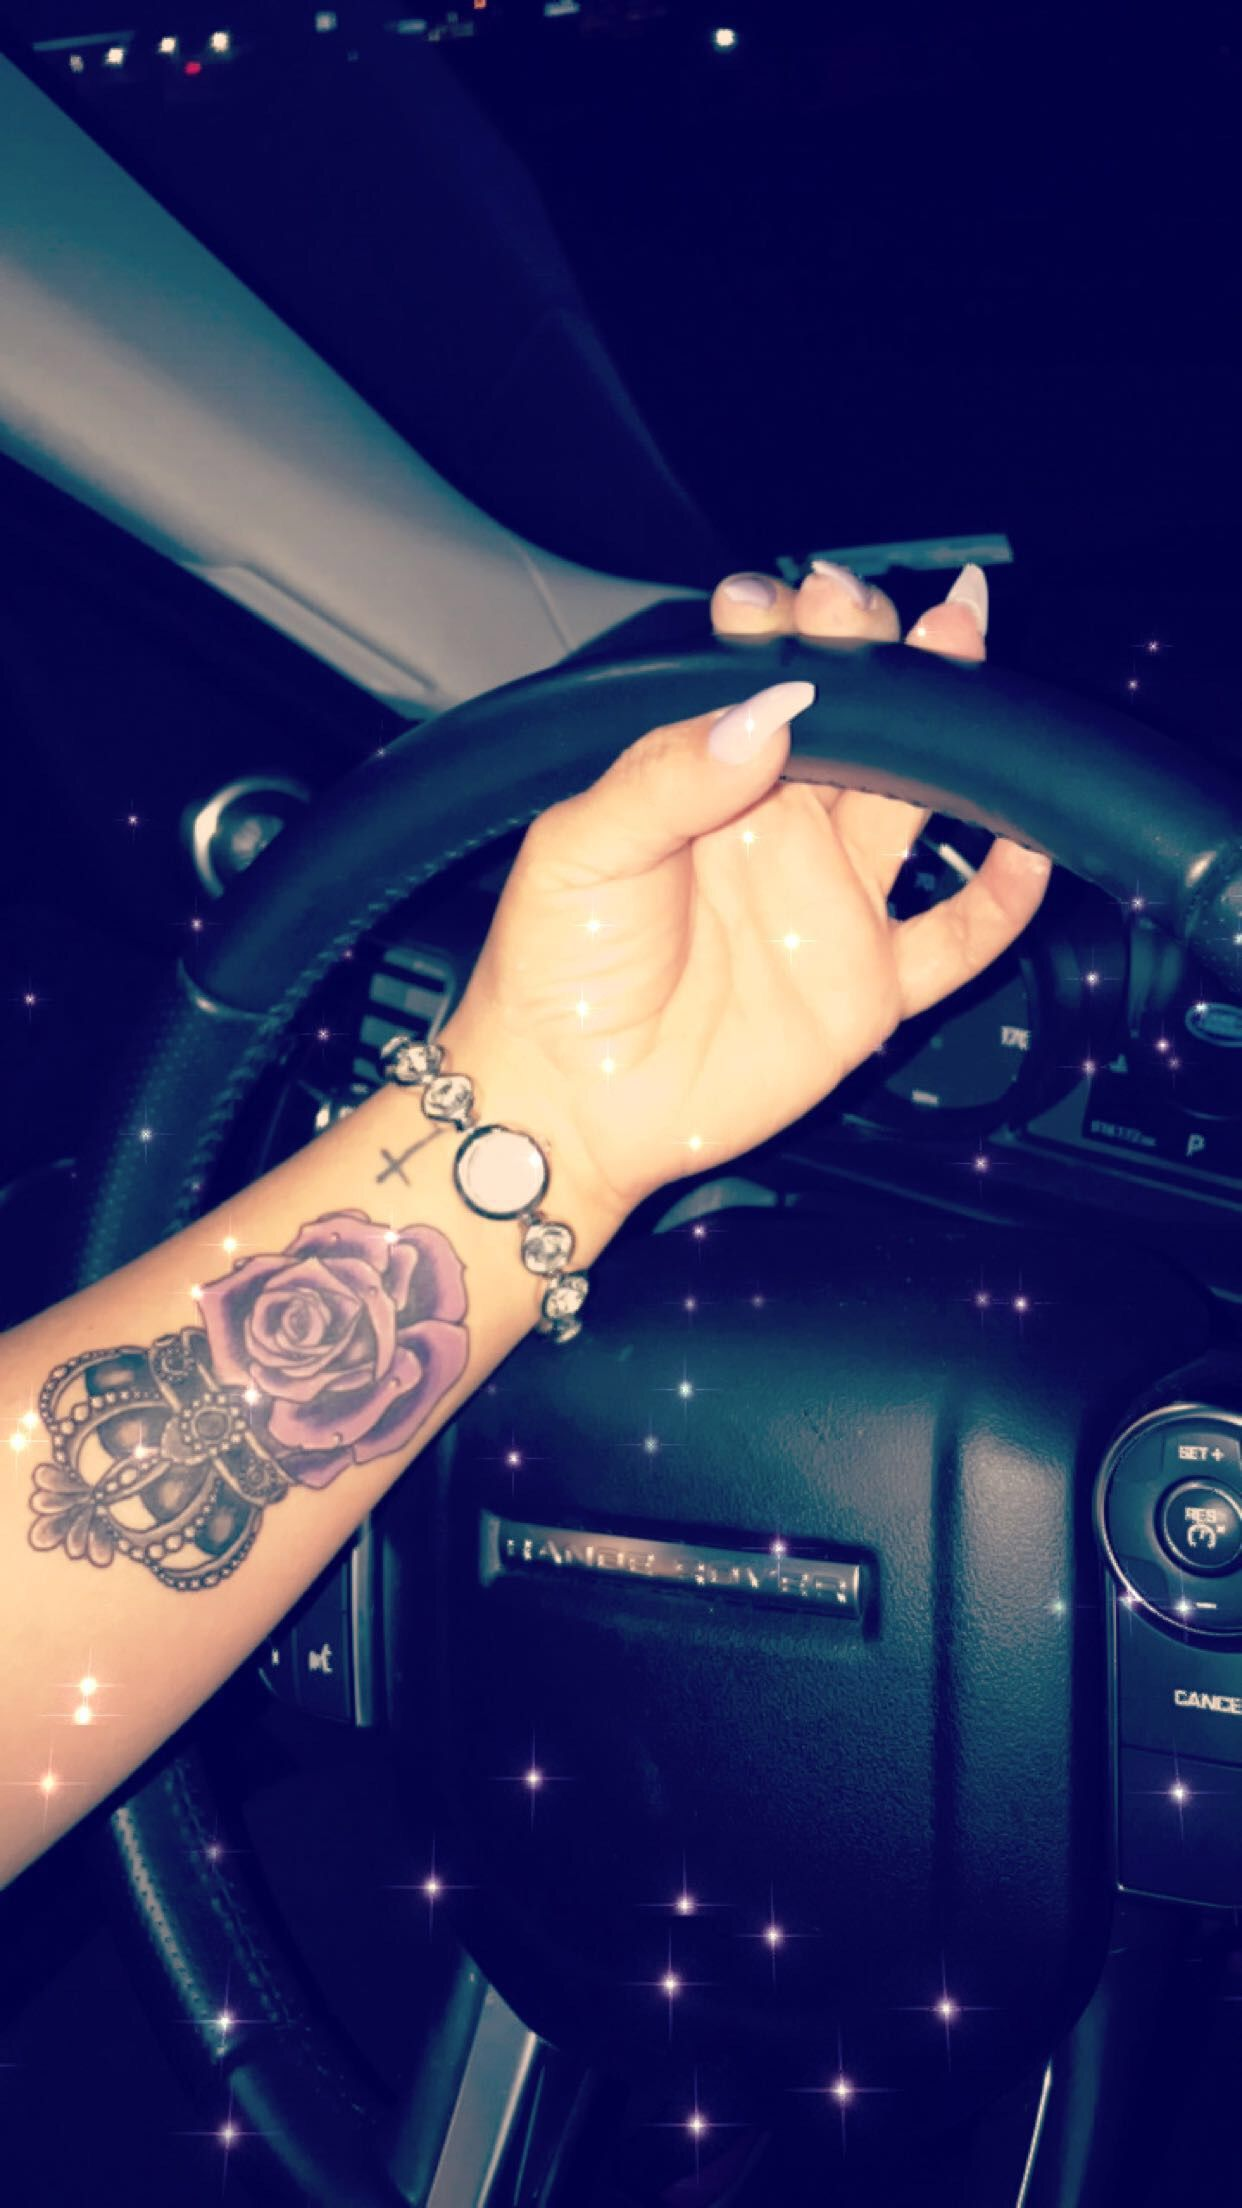 Finally Got It Rose With Crown Tattoo Represents So Many Things Tattoos Wrist Tattoos Tattoos Und Symbolic Tattoos